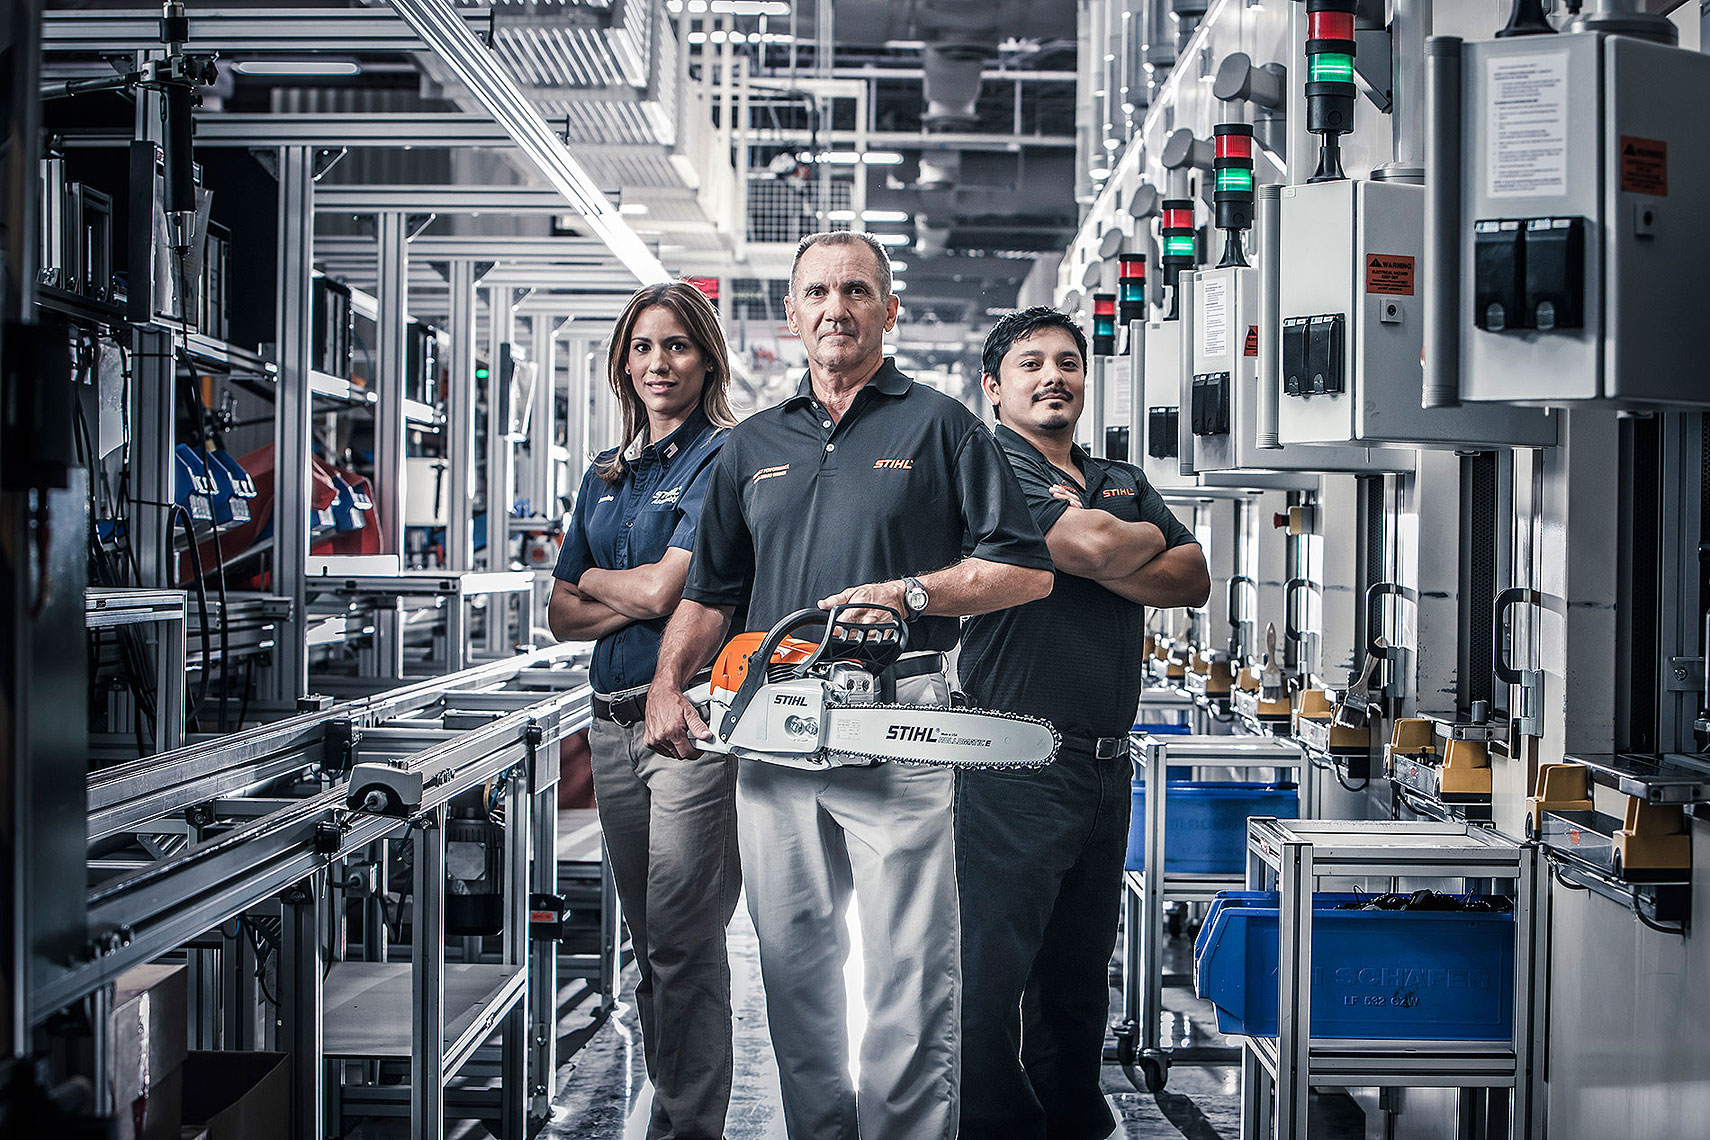 STIHL Factory Portrait | John Fedele Product Photography